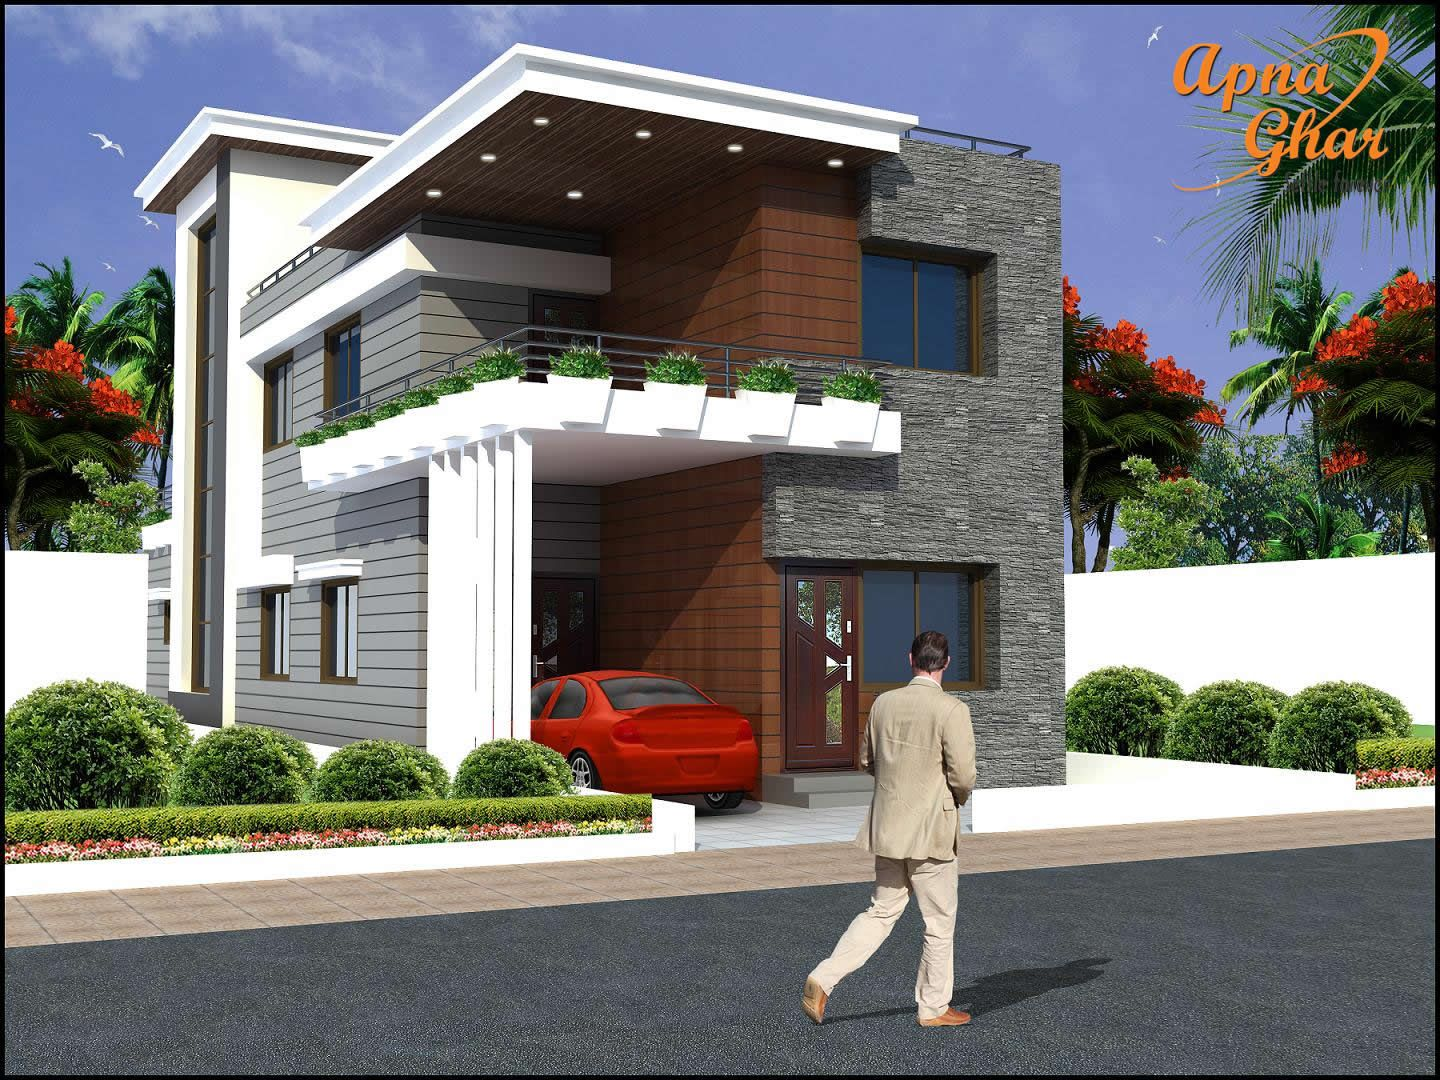 6 bedrooms duplex 2 floor house design in 208m2 8m x for Small duplex house